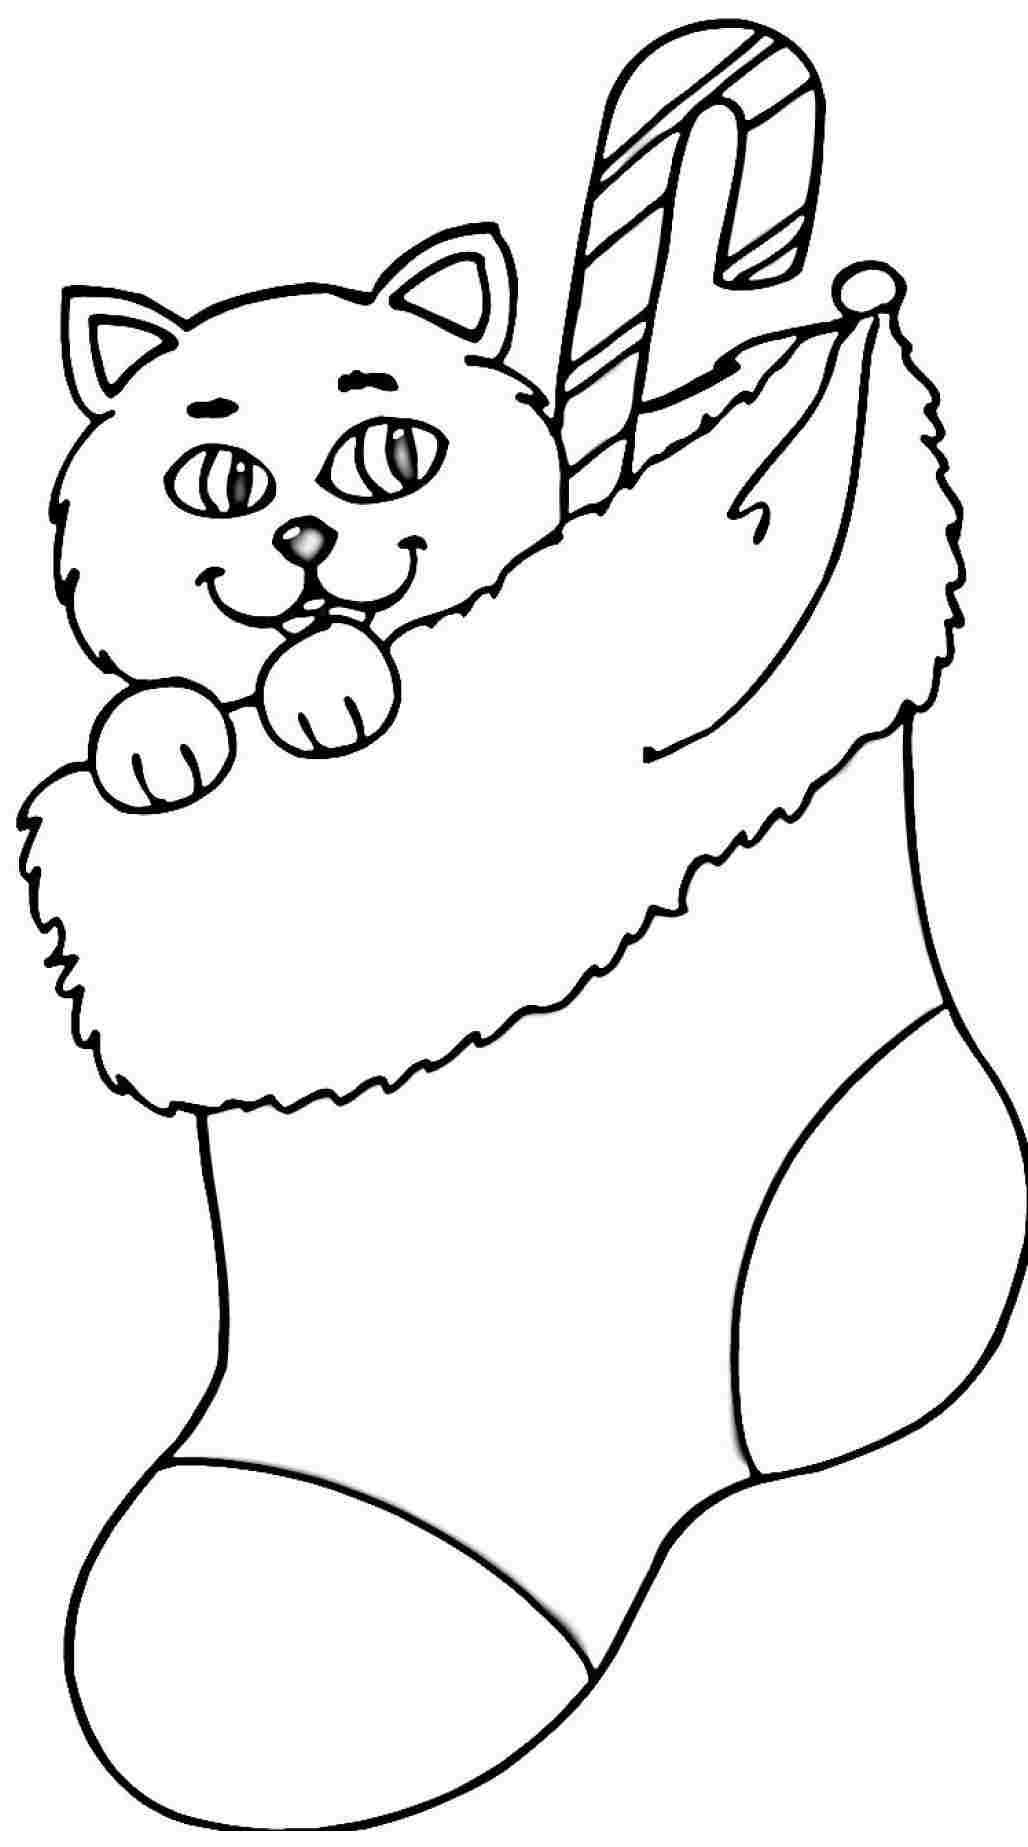 Printable christmas stocking coloring pages coloring home for Christmas stocking color page